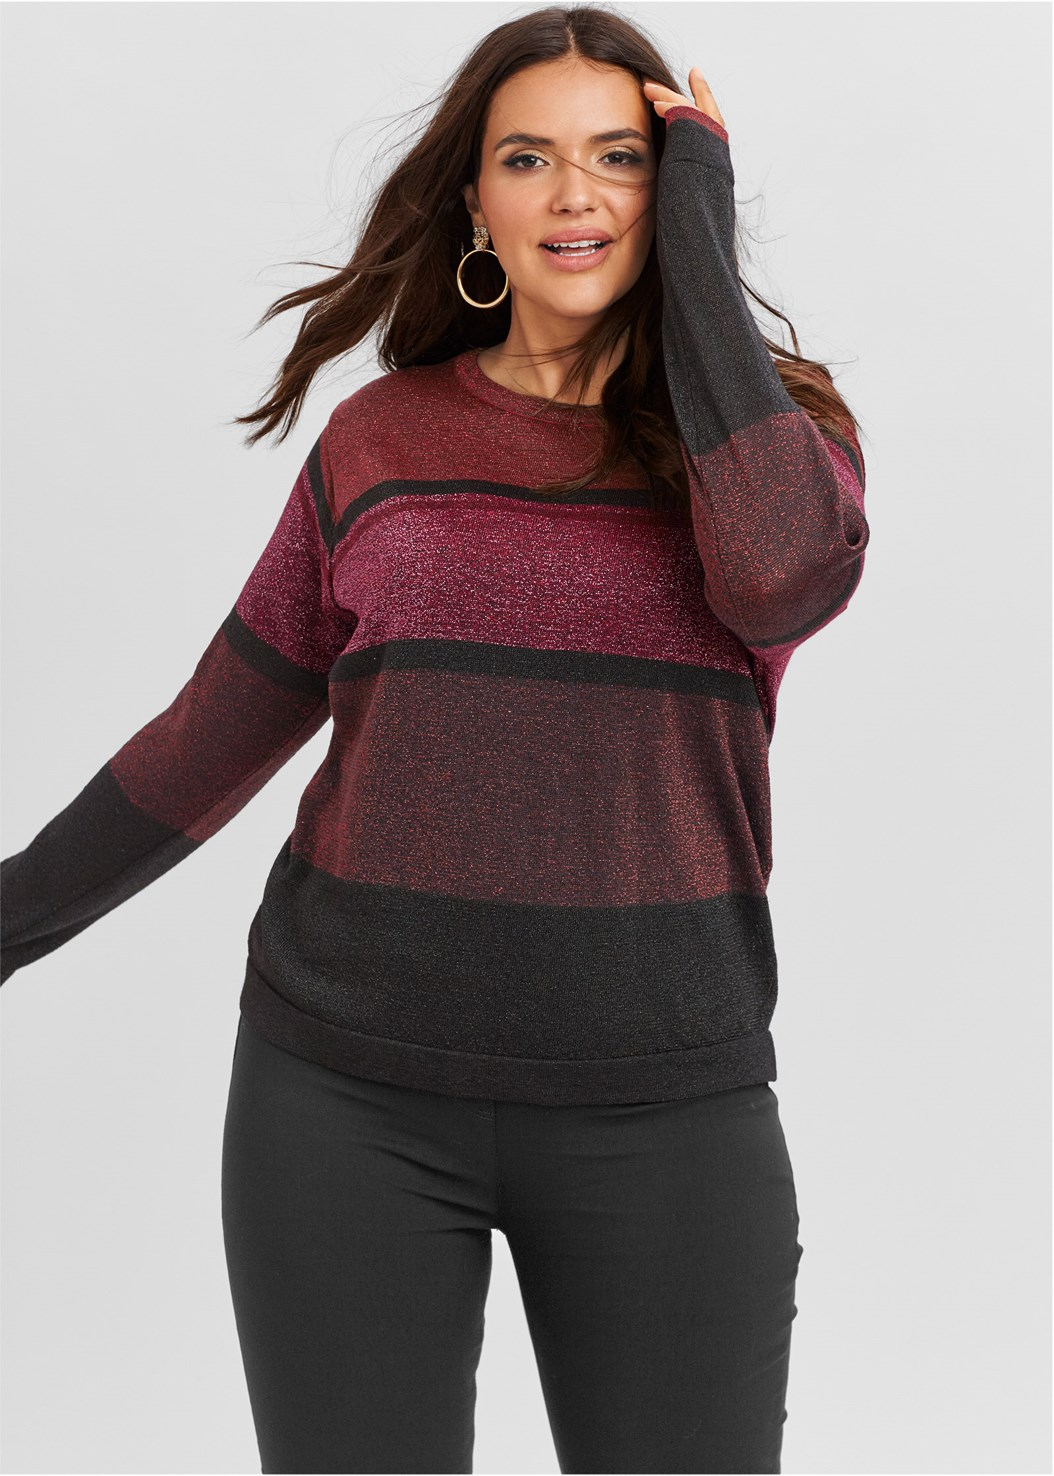 Color Block Sweater,Mid Rise Full Length Slimming Stretch Jeggings,Tiger Detail Earrings,Lurex Detail Scarf